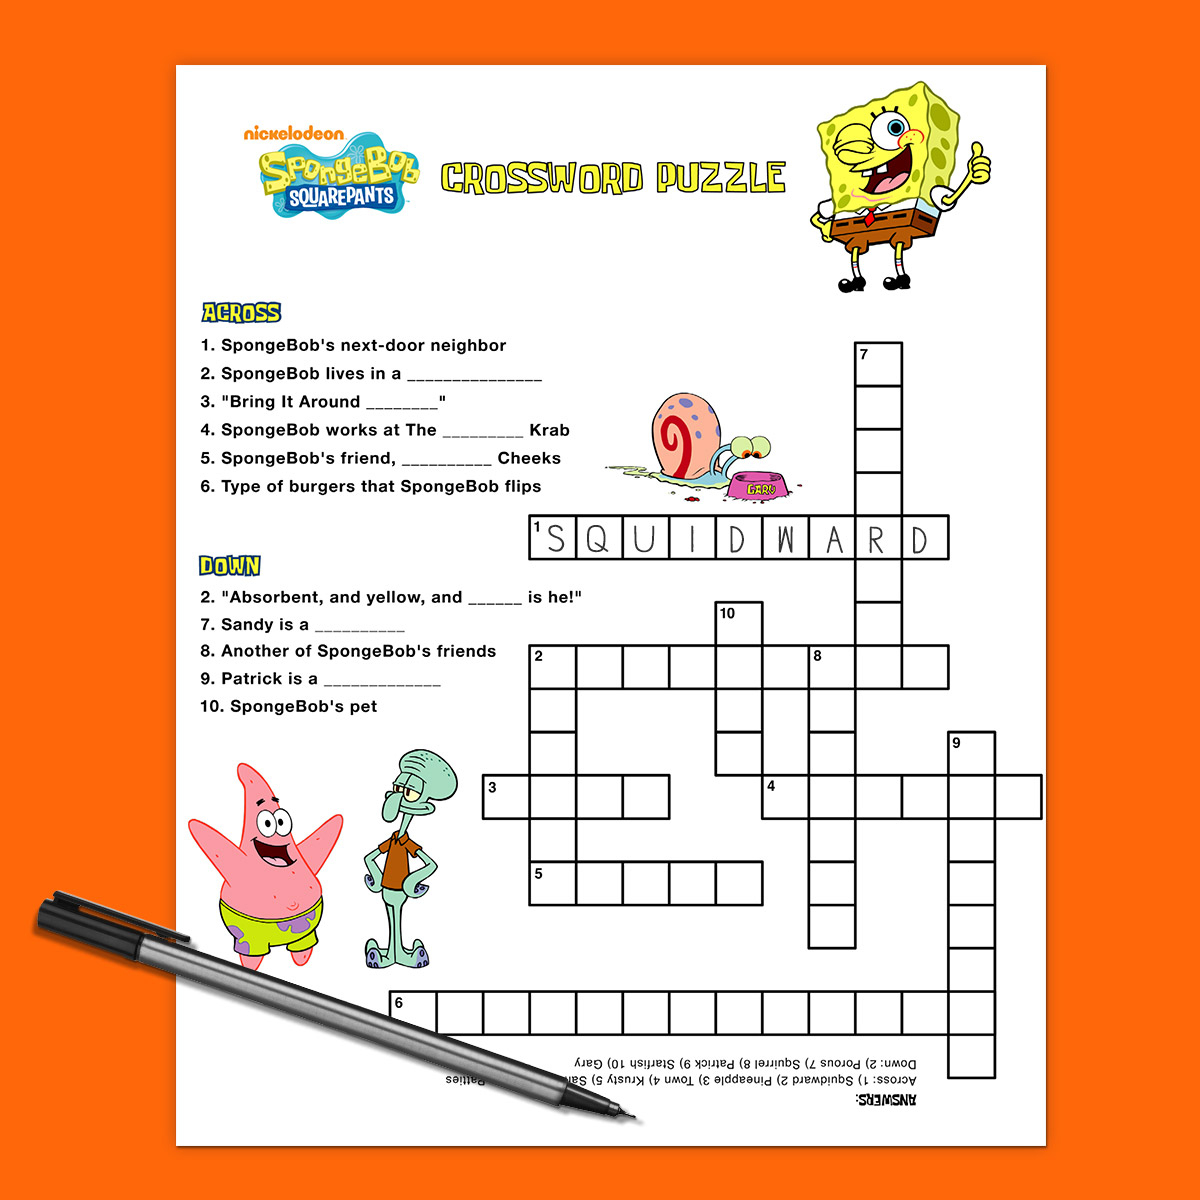 Spongebob Crossword Puzzle | Nickelodeon Parents - Printable Teenage Crossword Puzzles